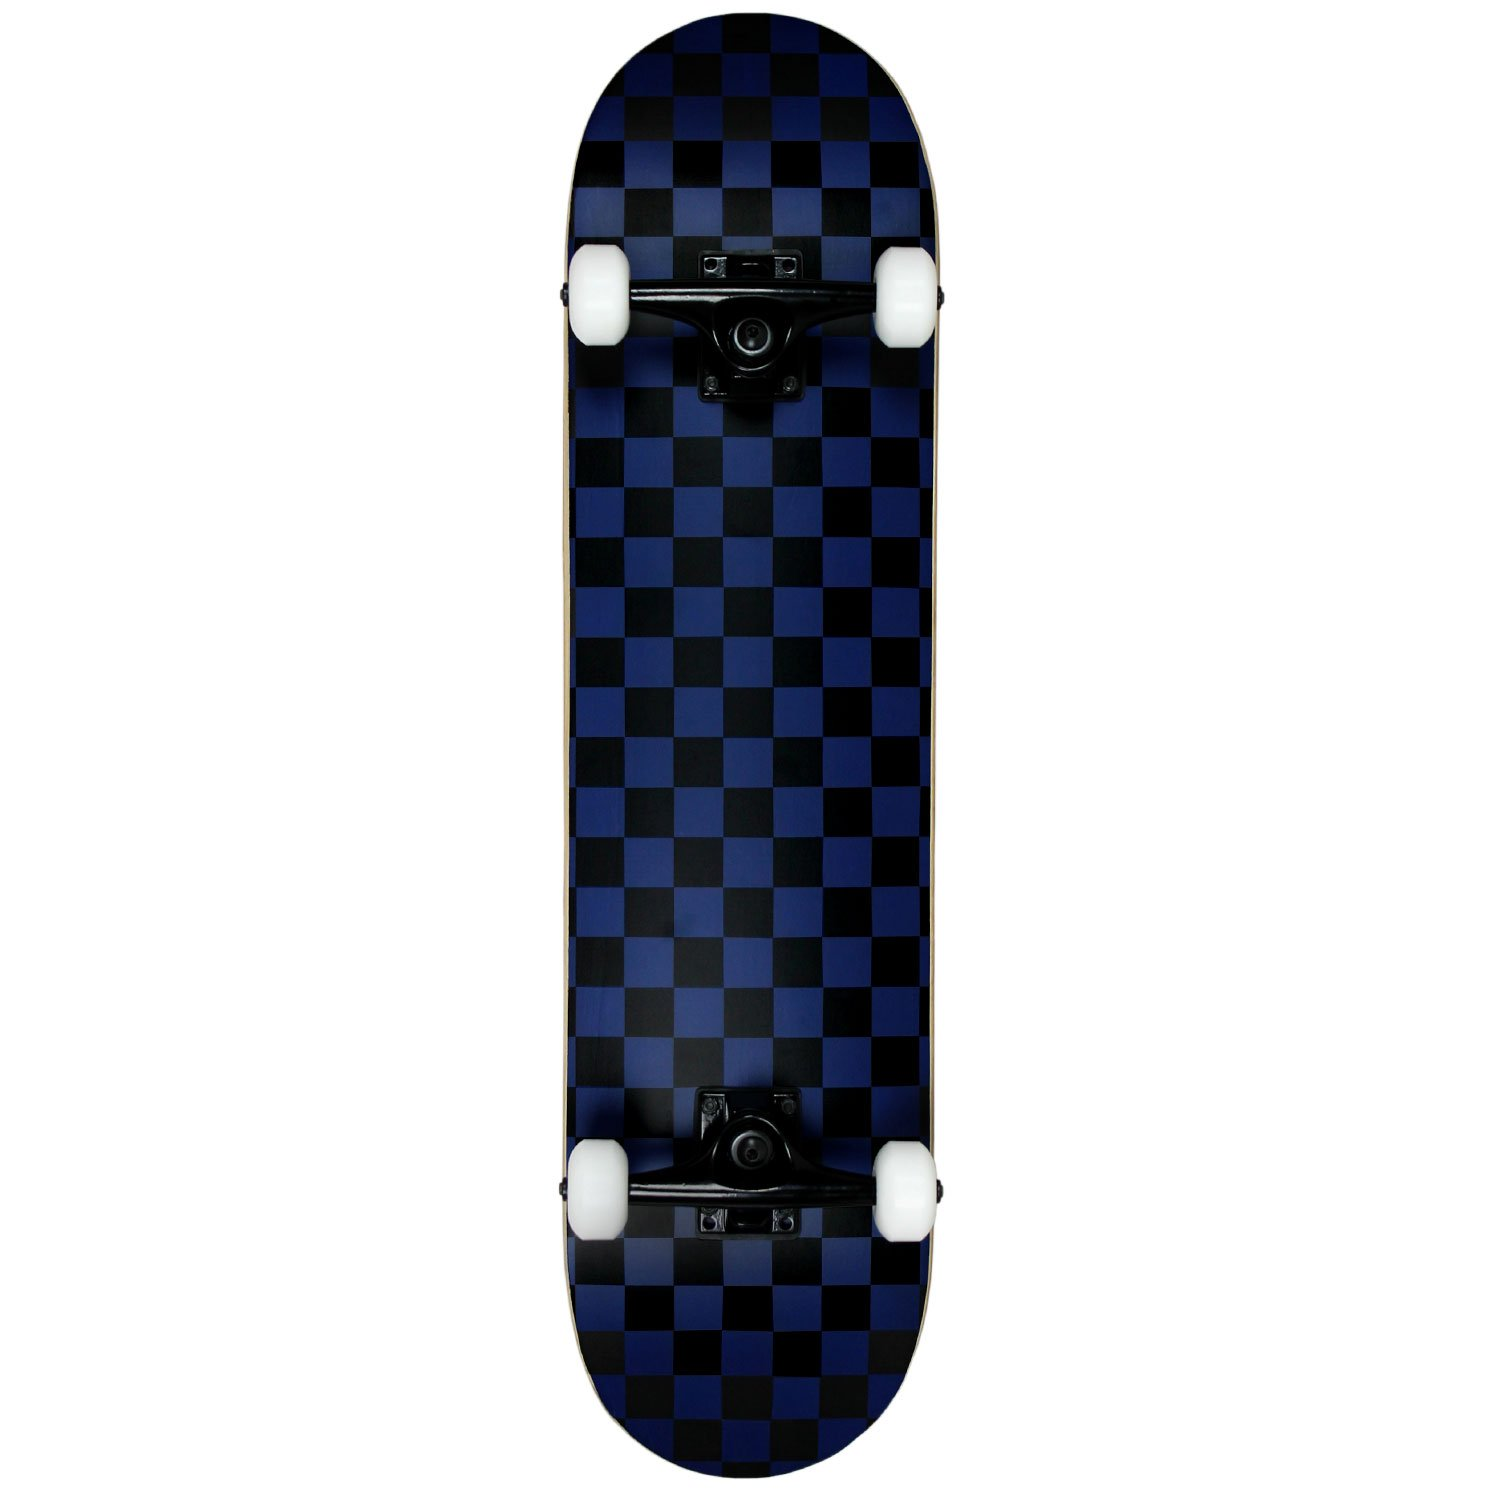 4d5fd369849 Amazon.com   Krown PRO Skateboard Complete Pre-Built Checker Pattern  Black Blue 7.75